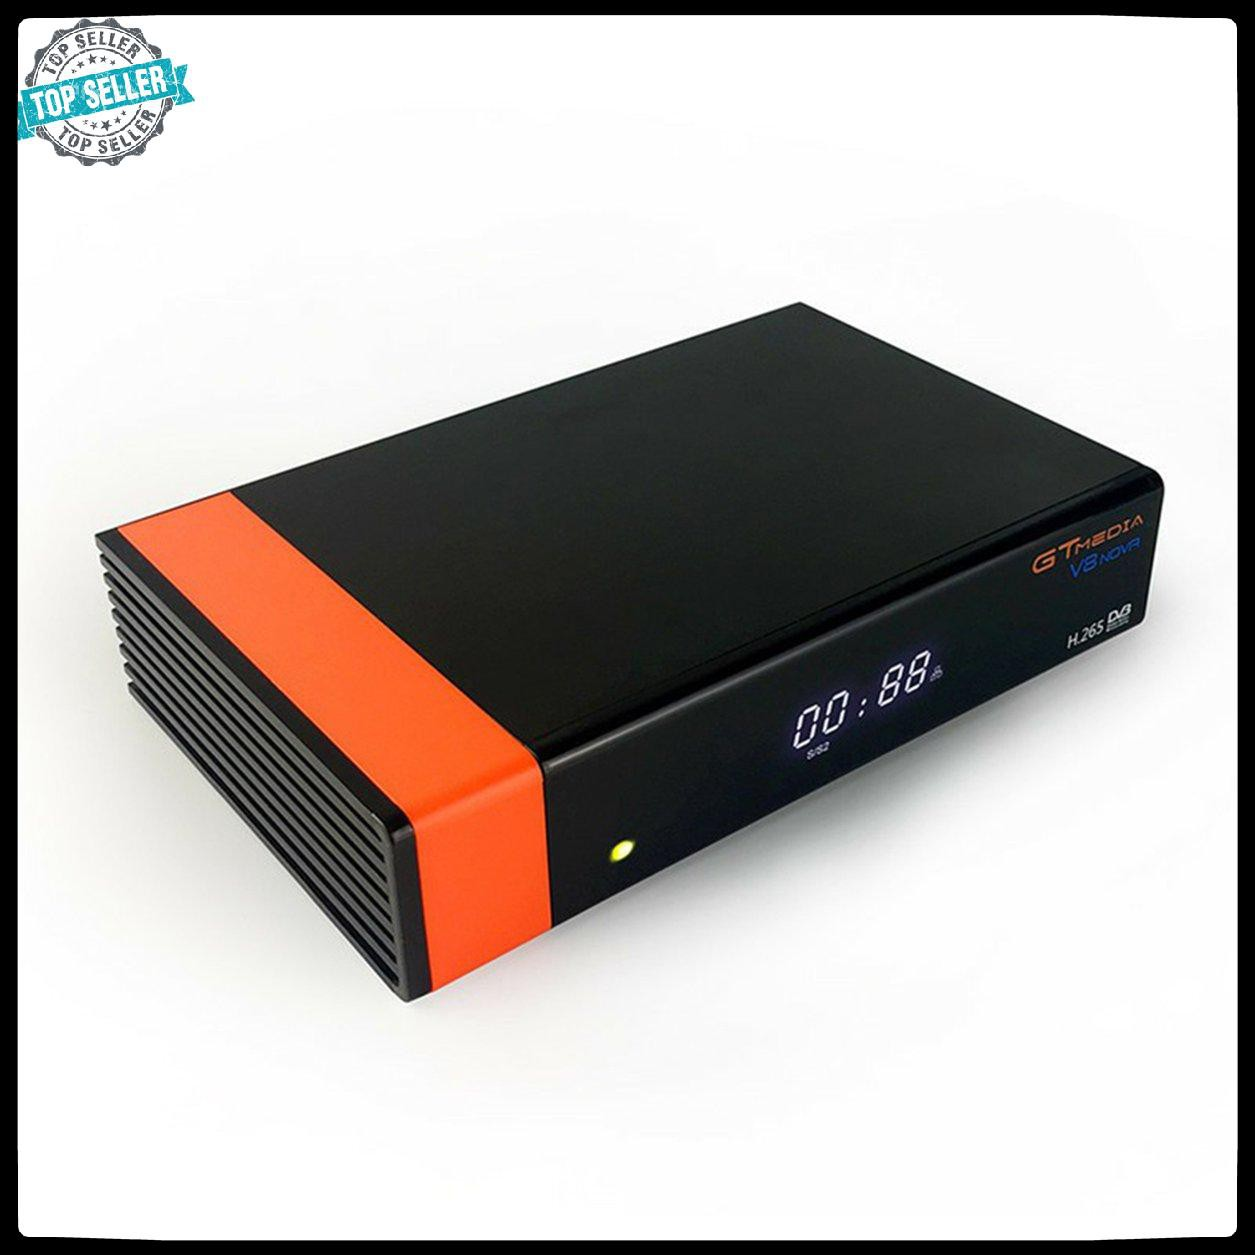 [hàng mới về] V8 Nova Network Set-Top Box Built-In Wifi Scart Interface Supports H.265 Black